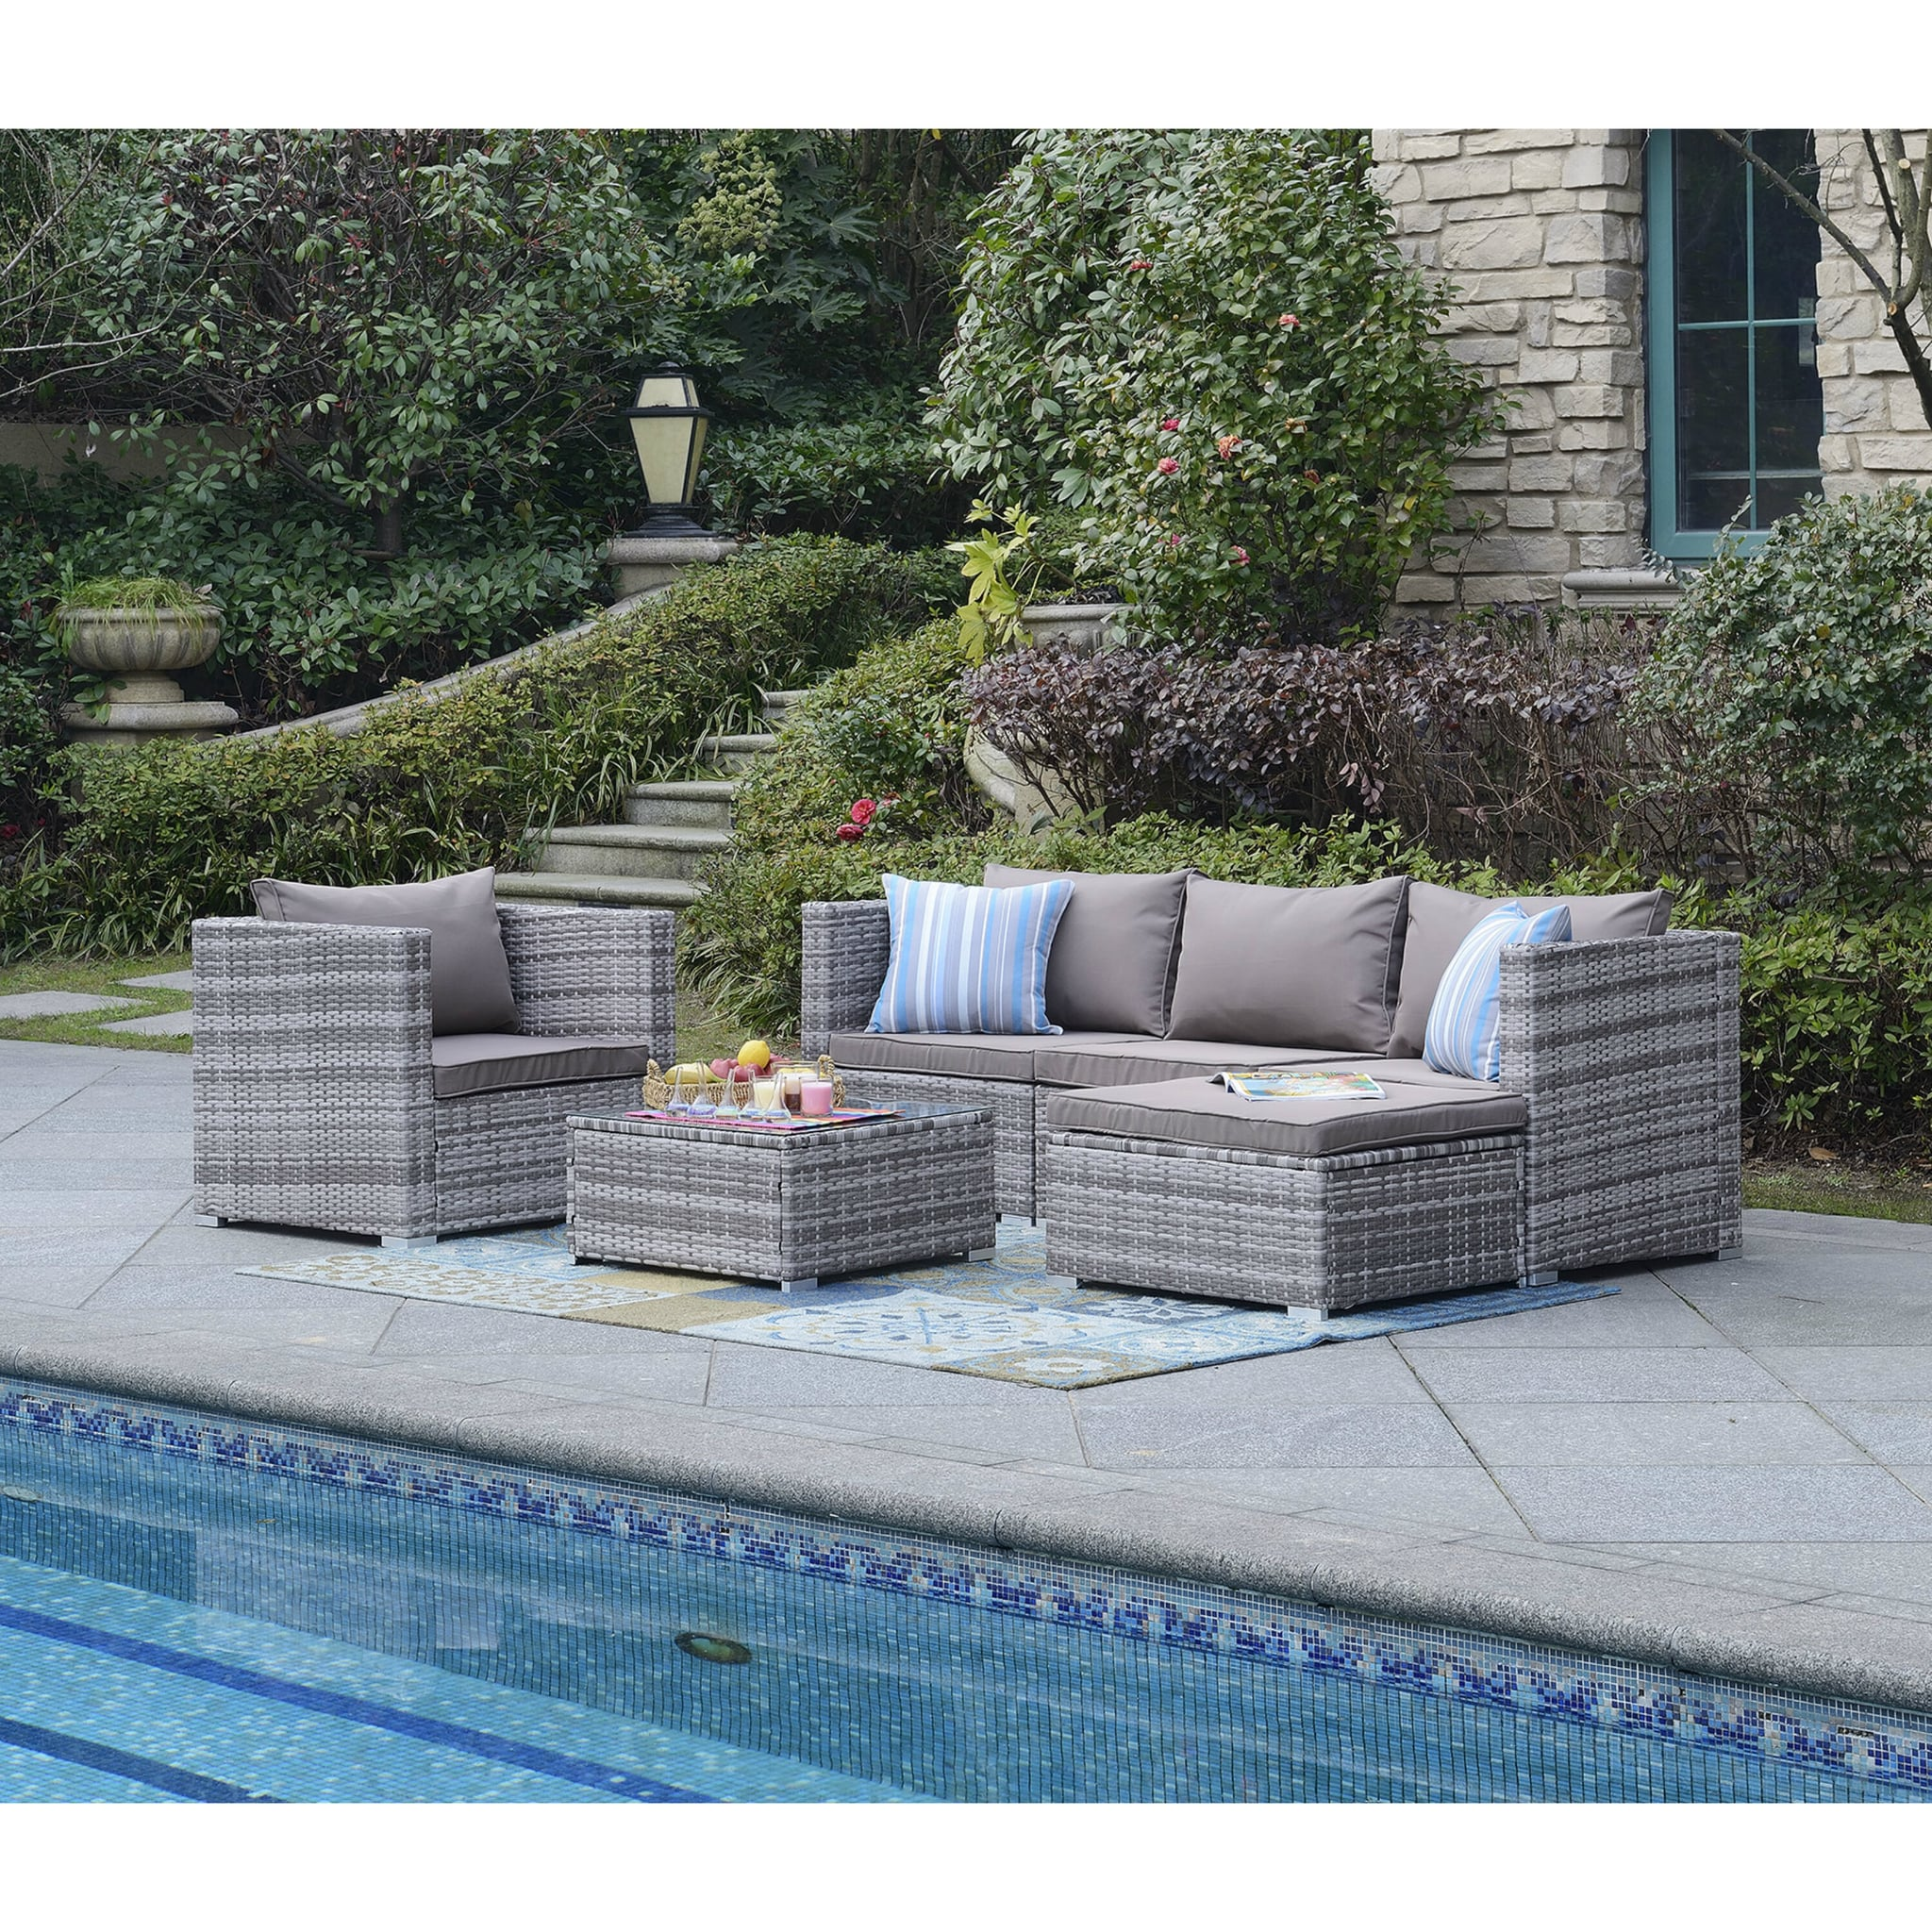 Augusta 6 Piece Rattan Sectional Seating Group With Cushions Wayfair S Biggest Sale Of The Year Is Here And These Are The 70 Hottest Deals To Score Popsugar Home Photo 28